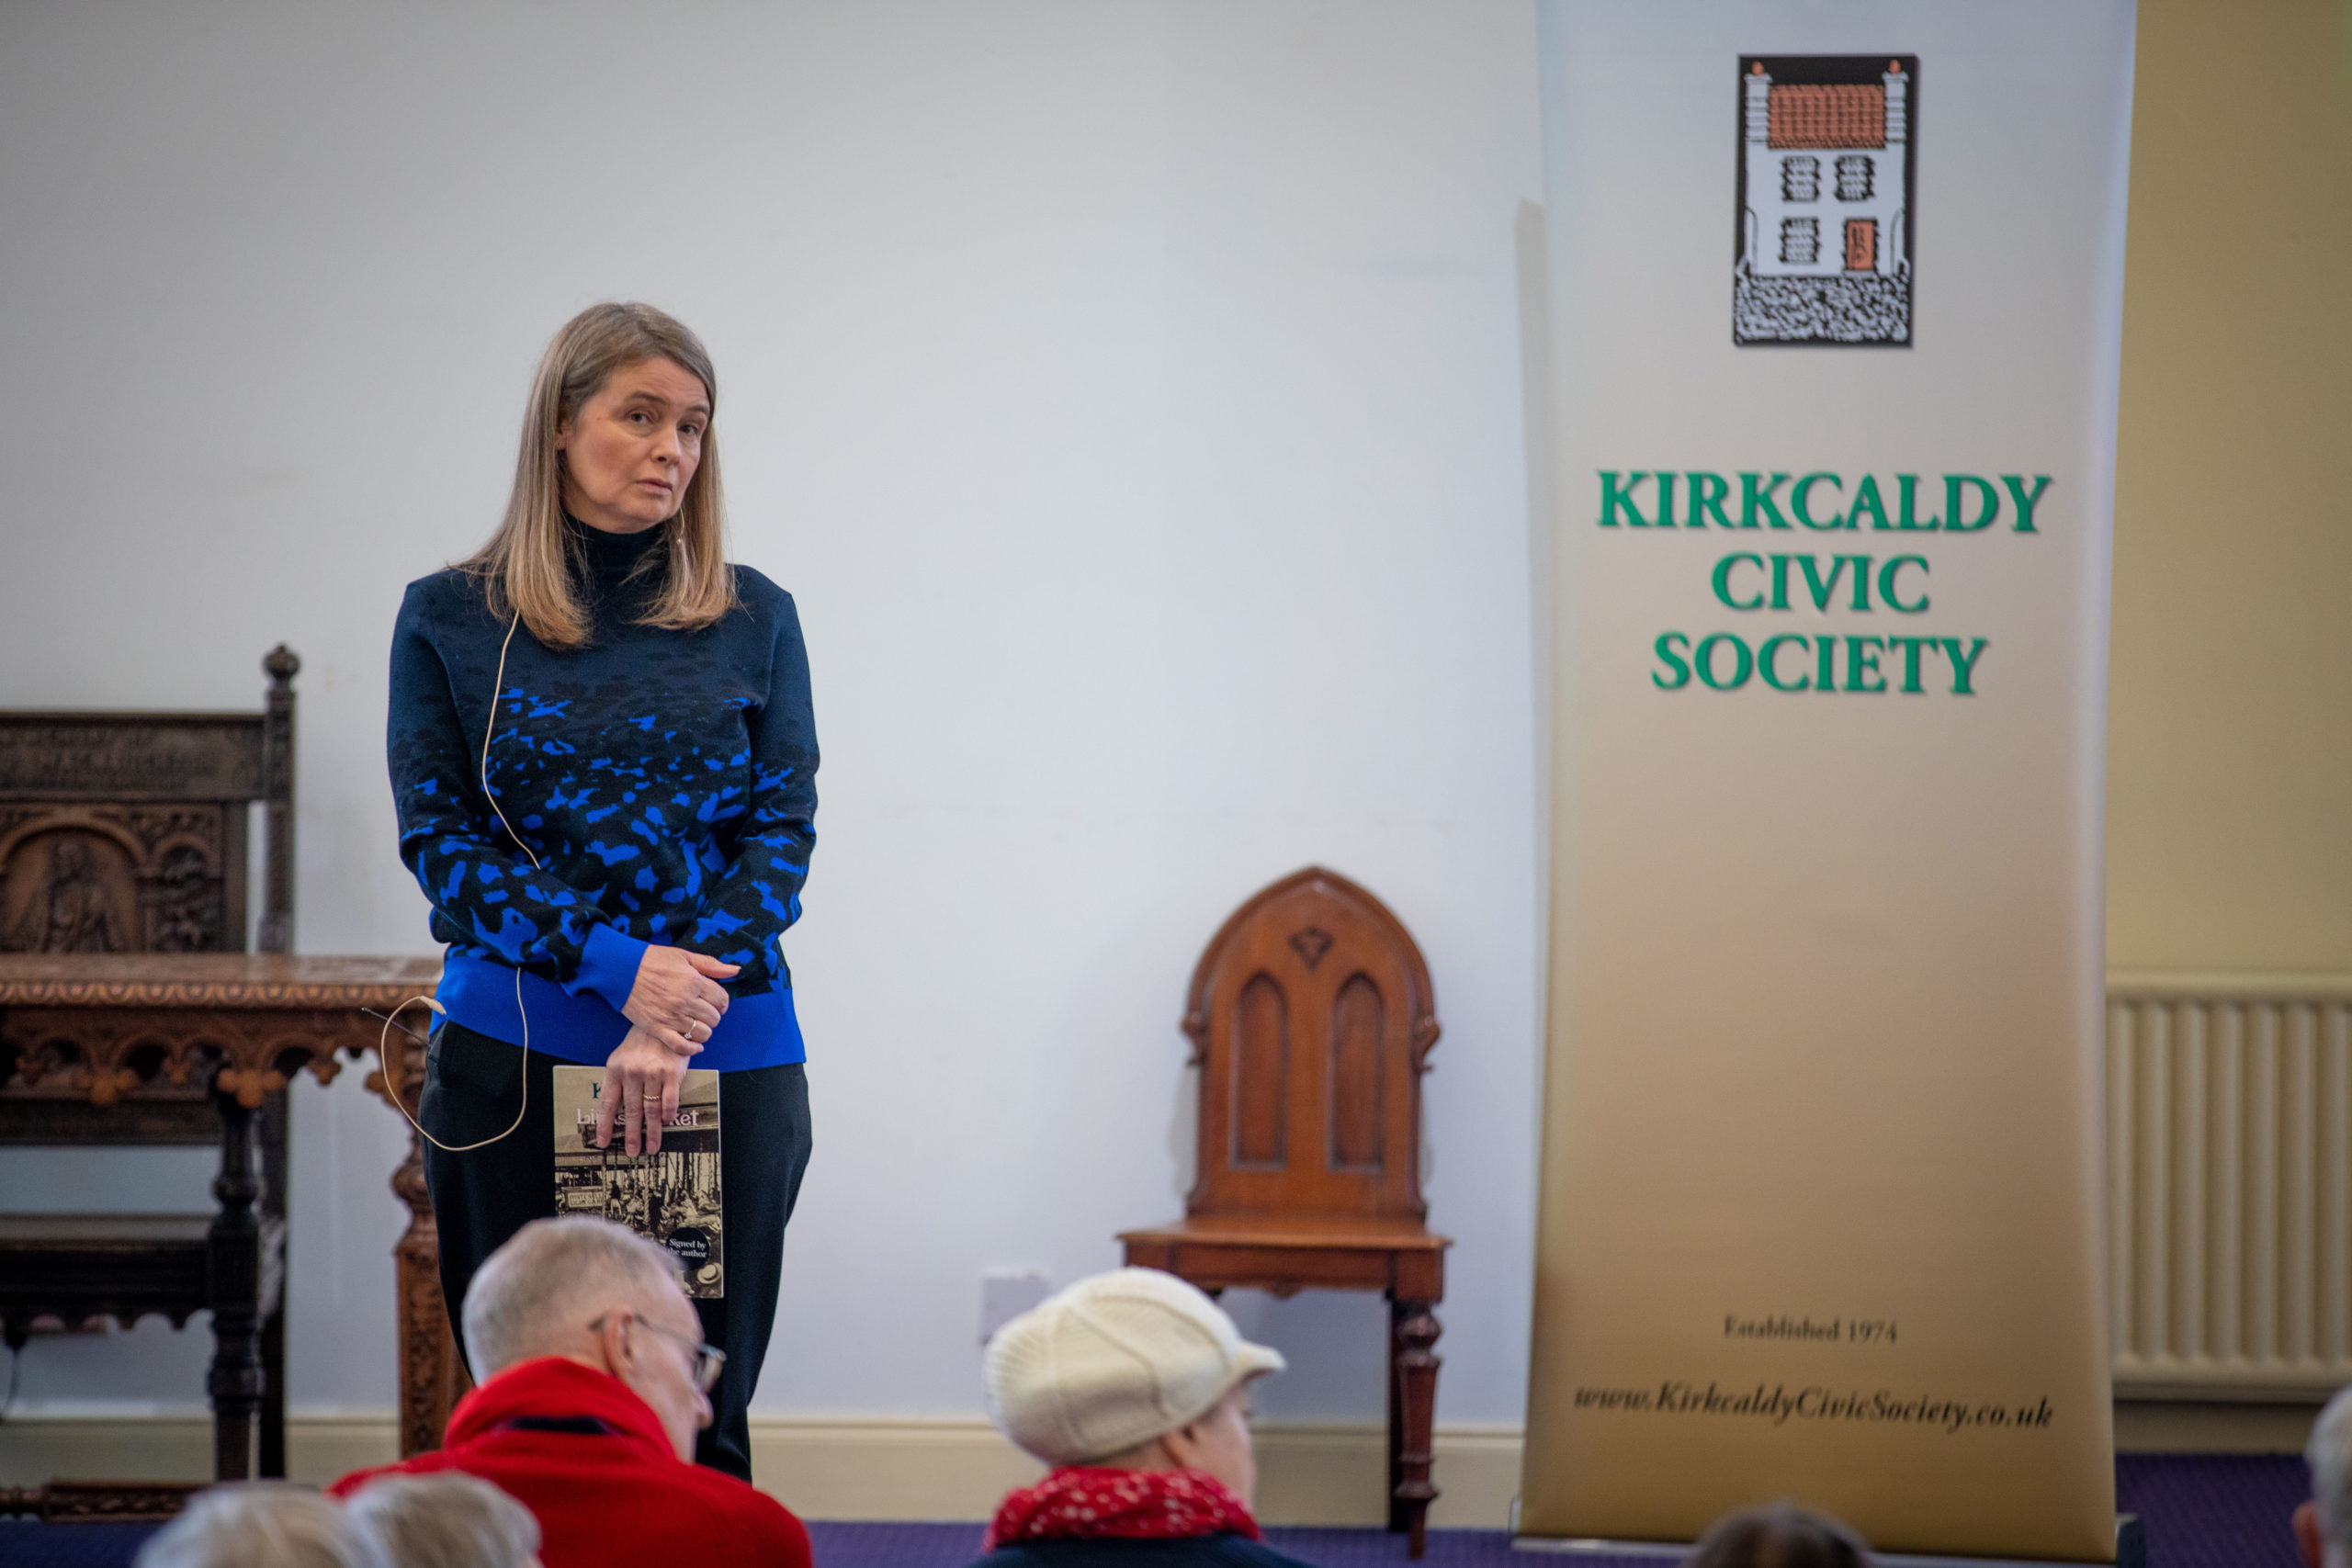 Cherise White spoke about the Links Market to Kirkcaldy Civic Society.